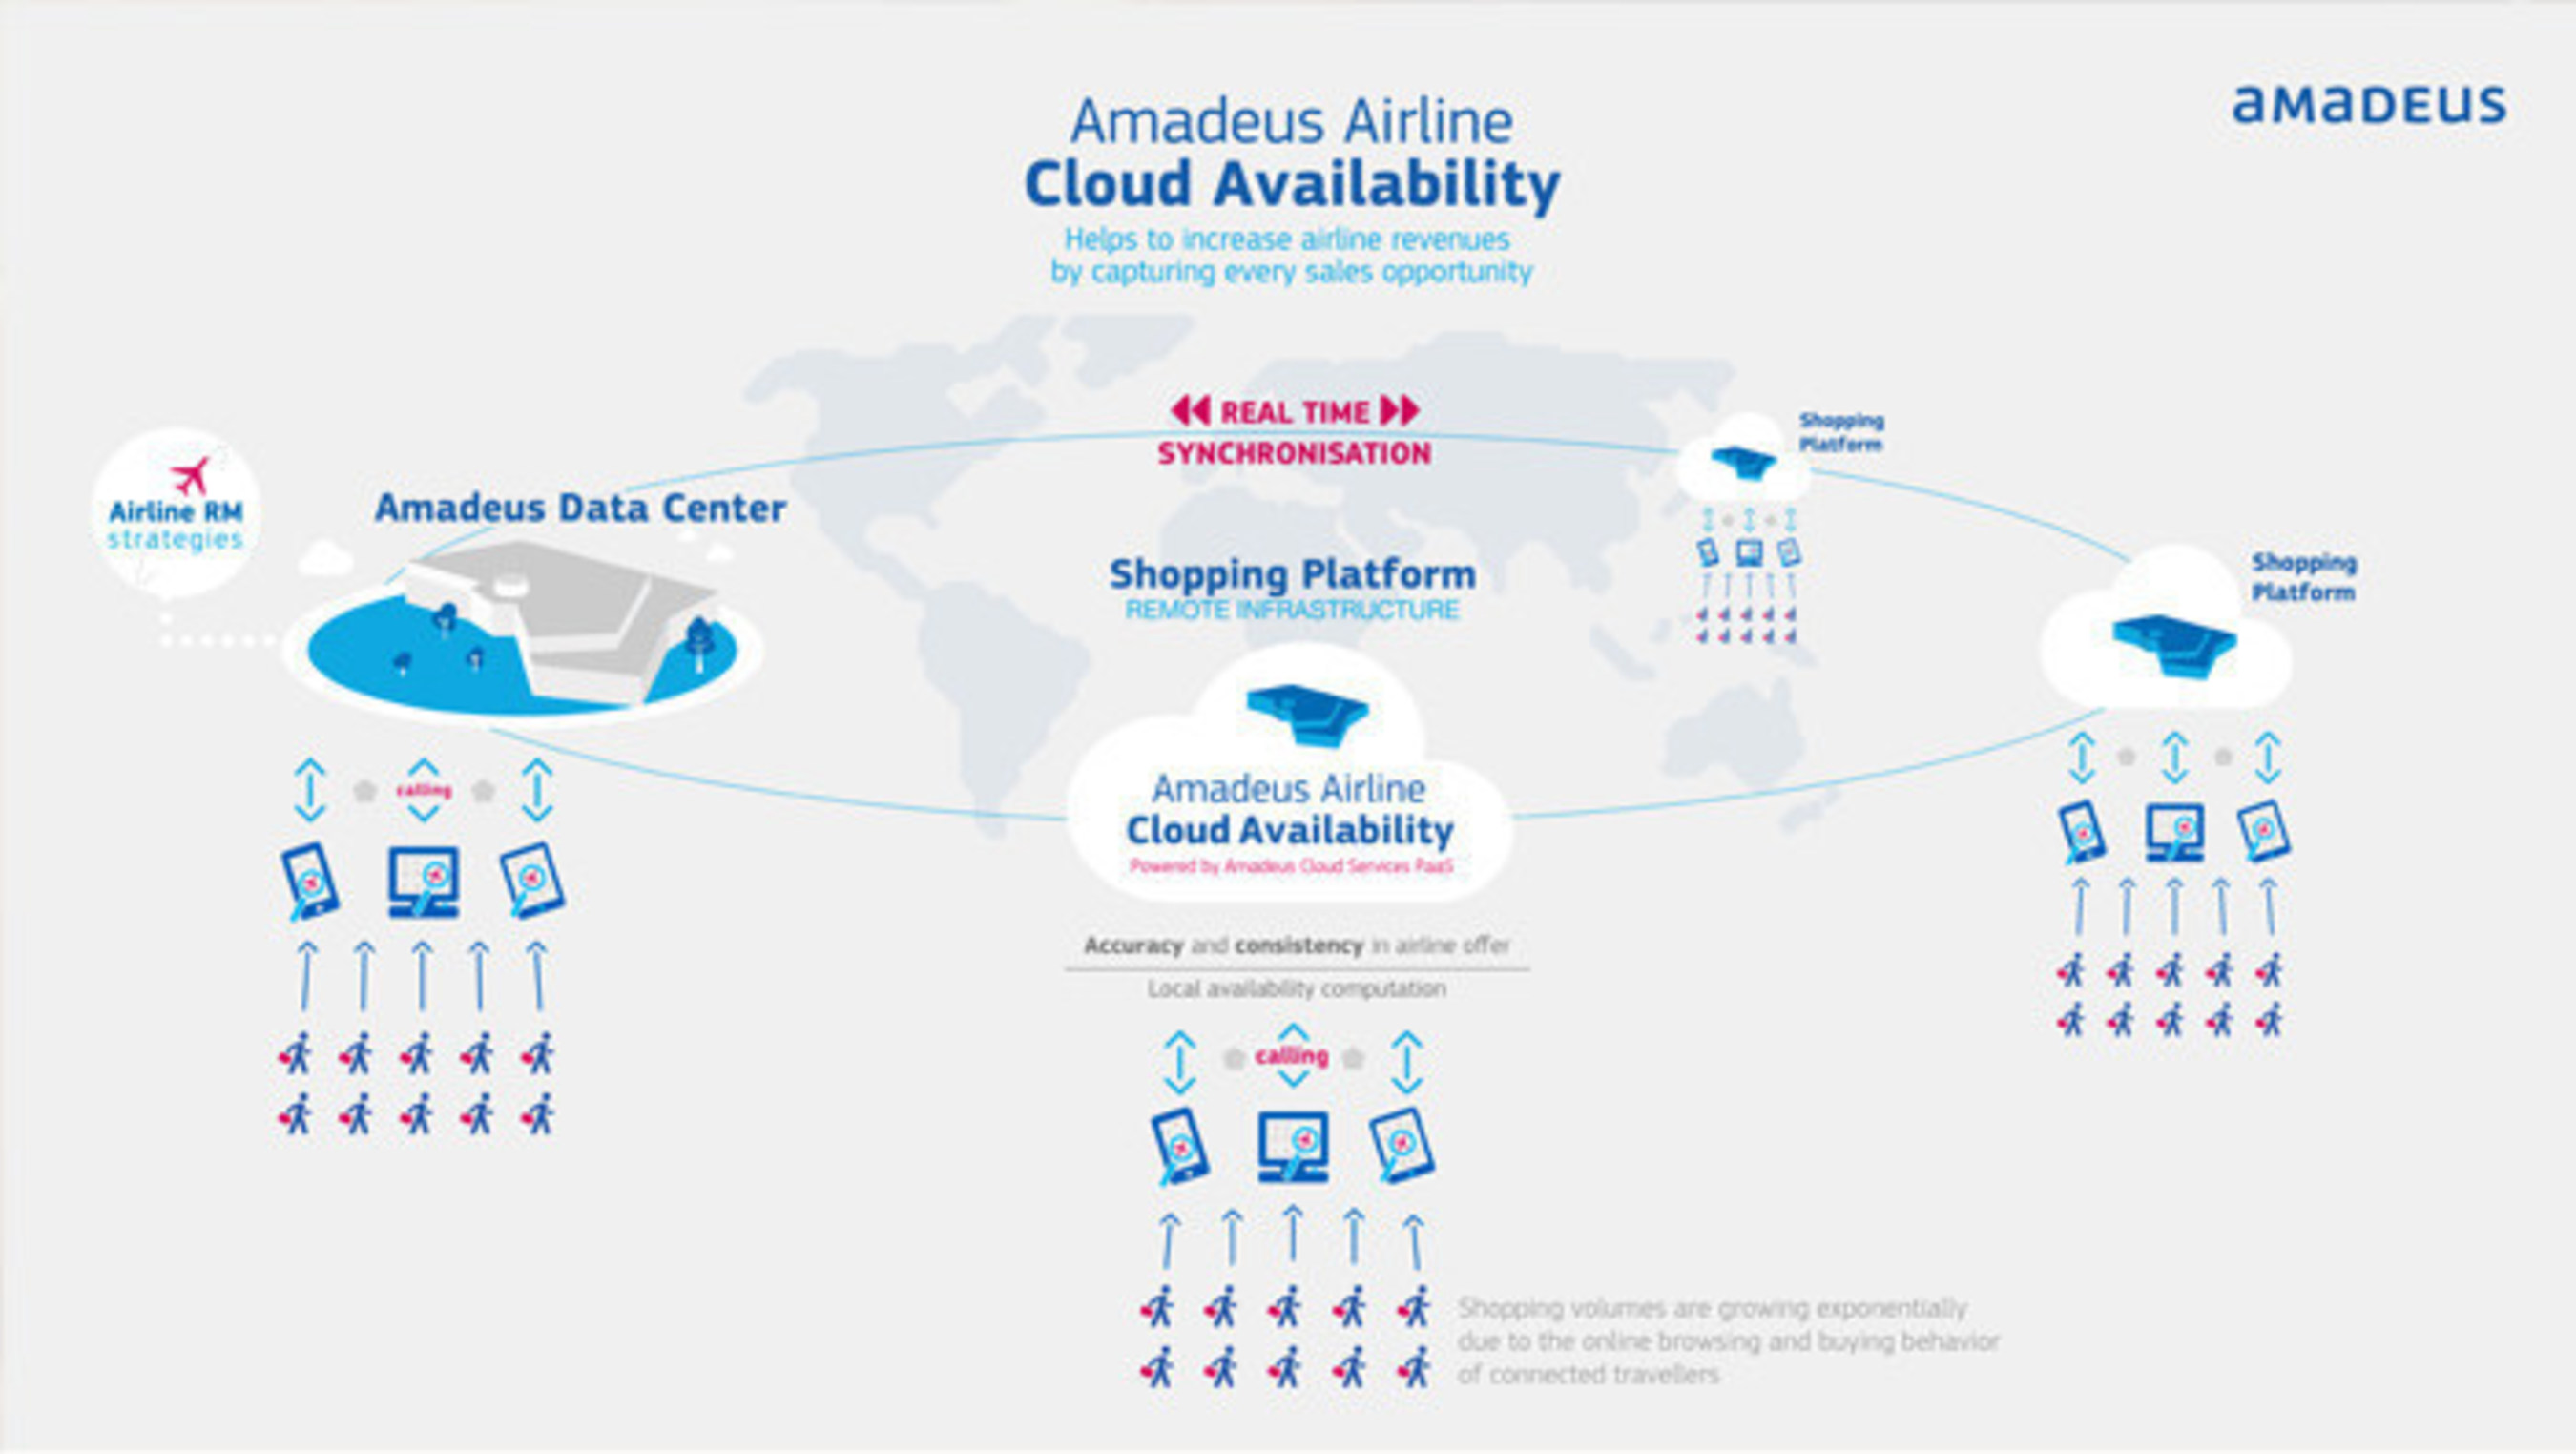 Amadeus Airline Cloud Availability solves the challenge of ever increasing flight search volumes